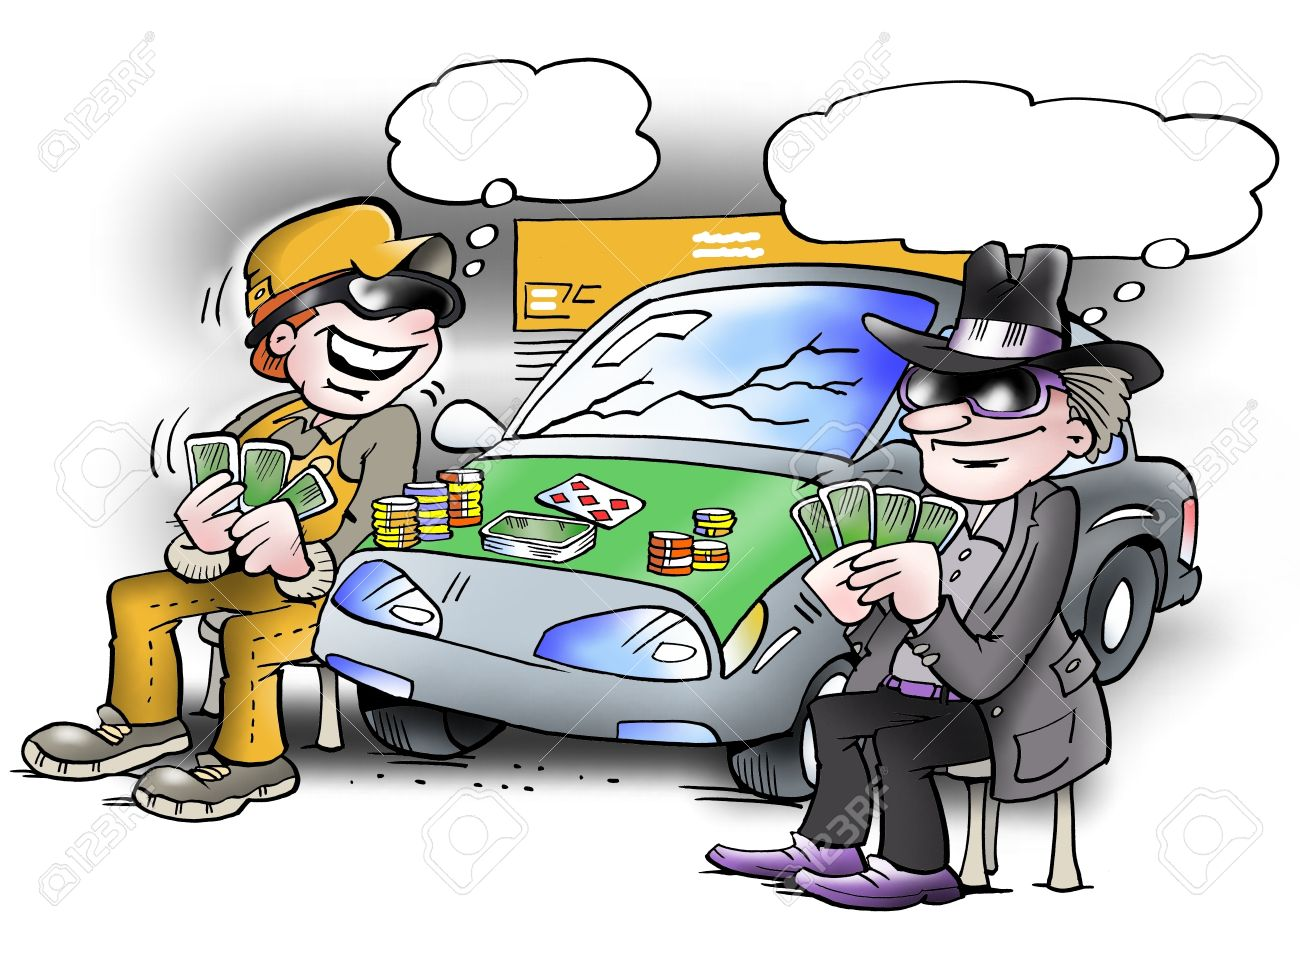 Two people play poker game on a car Stock Photo - 15173592